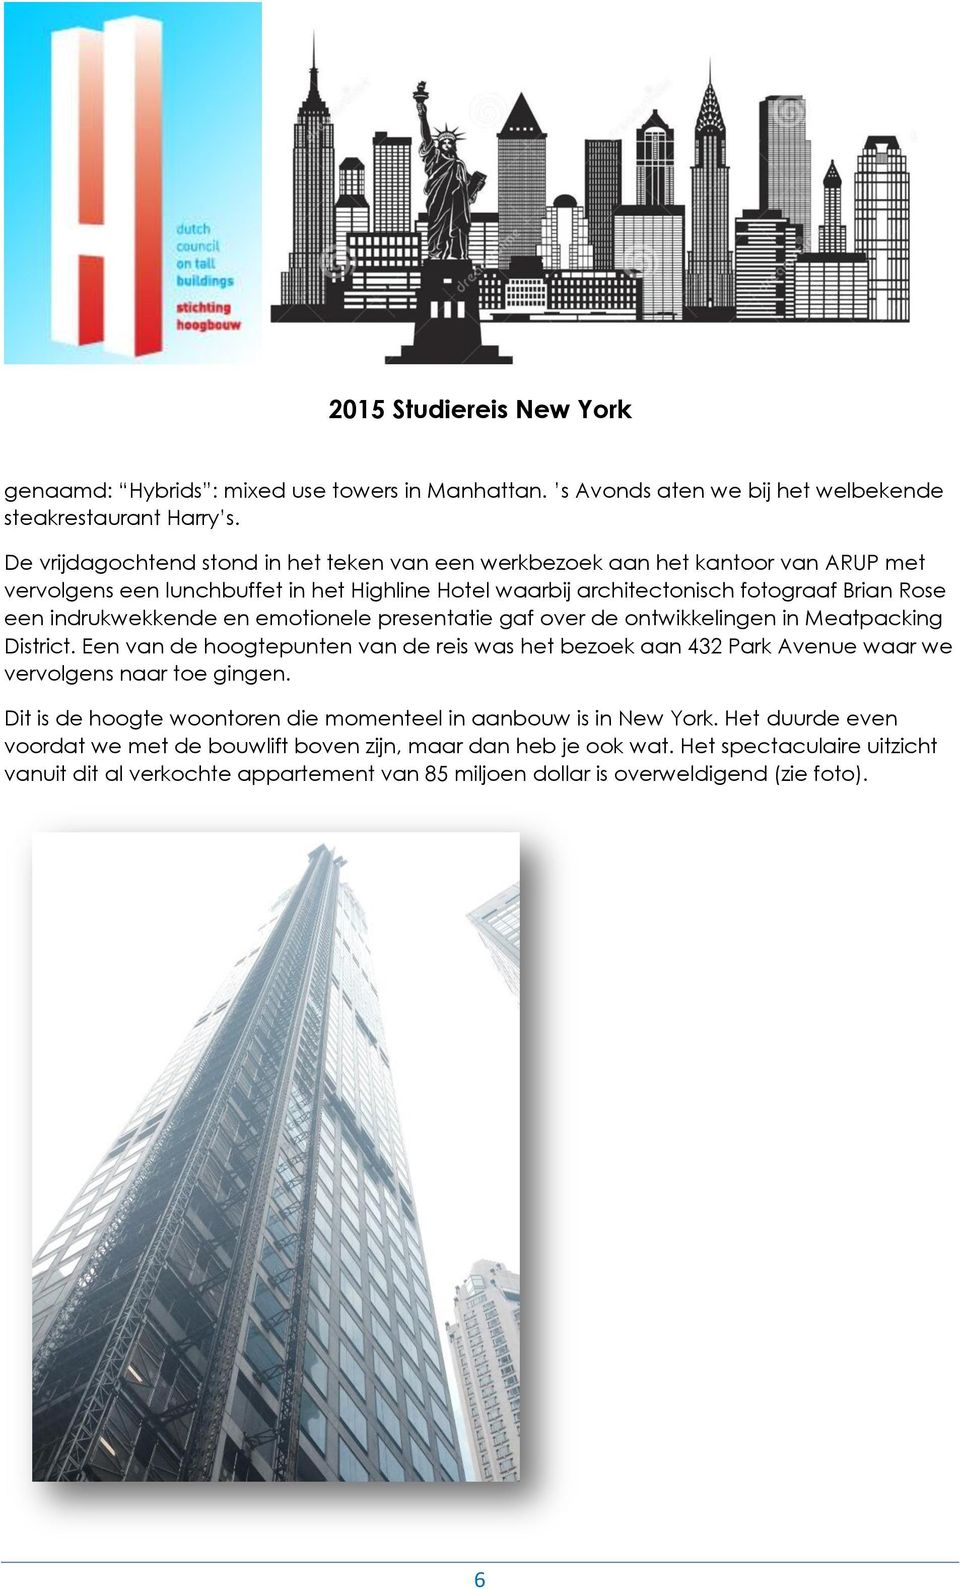 indrukwekkende en emotionele presentatie gaf over de ontwikkelingen in Meatpacking District.